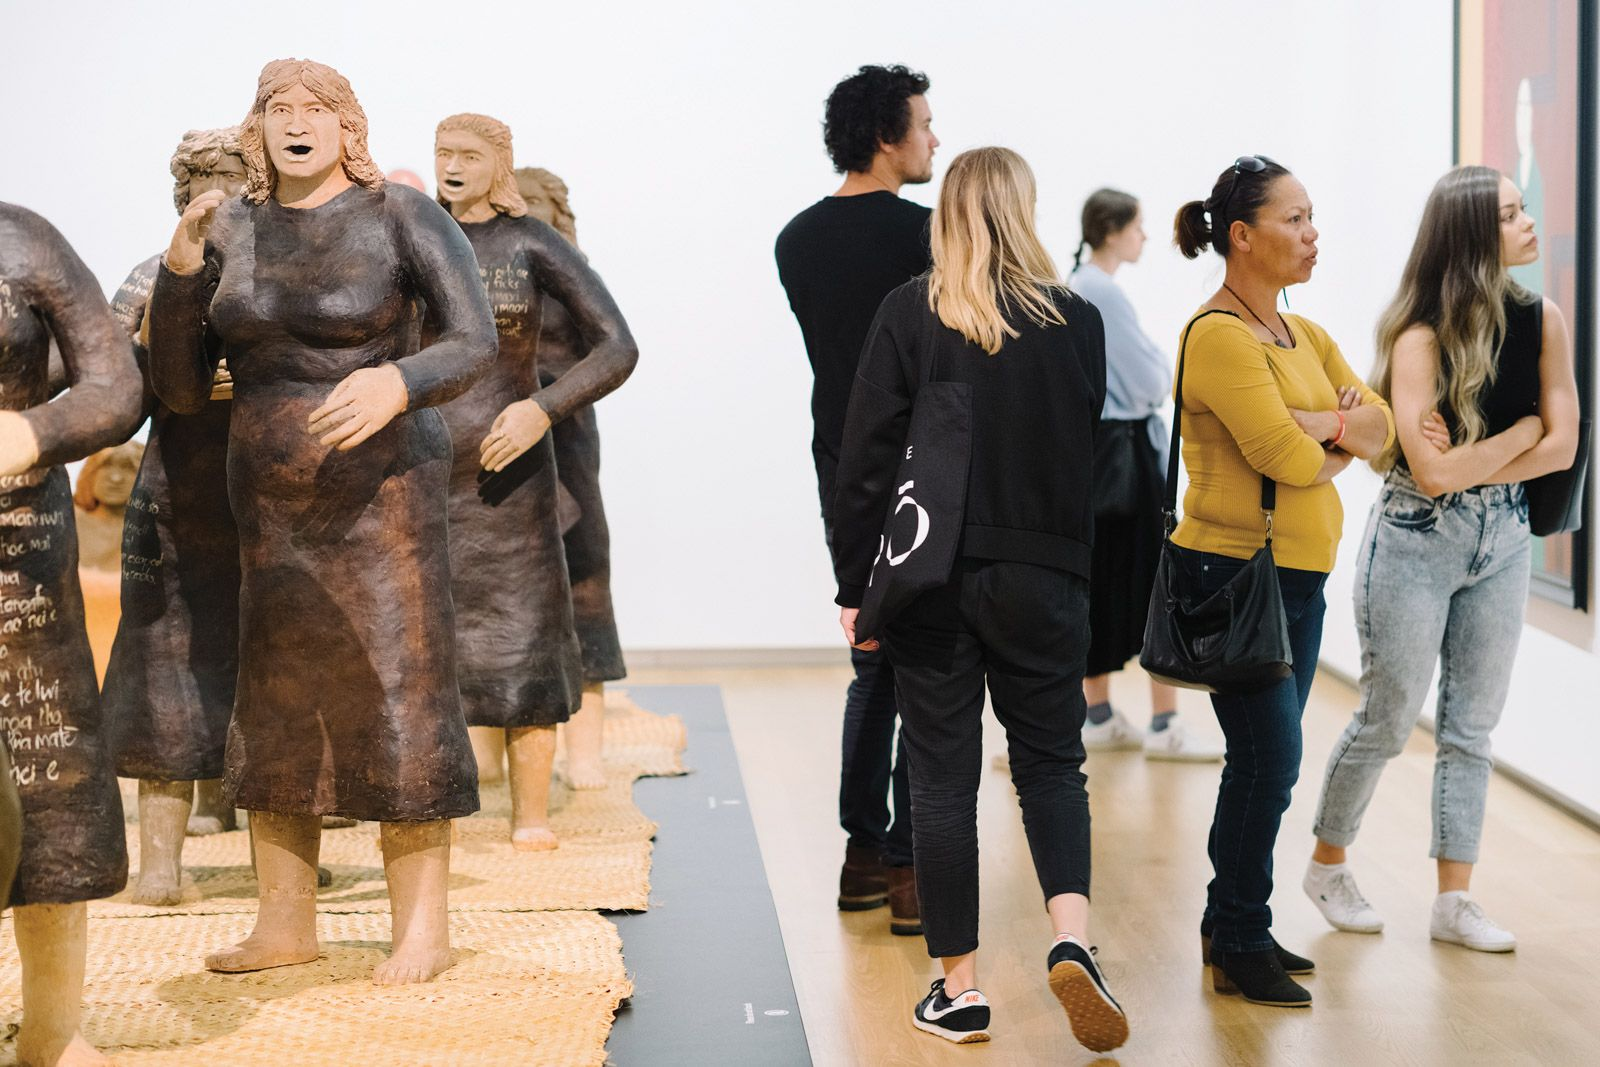 New Zealand triumph: the watershed exhibition Toi Tū Toi Ora: Contemporary Māori Art was the largest show in the 133-year history of the Auckland Art Gallery Toi o Tāmaki. The country's museums were closed for less time than the global average